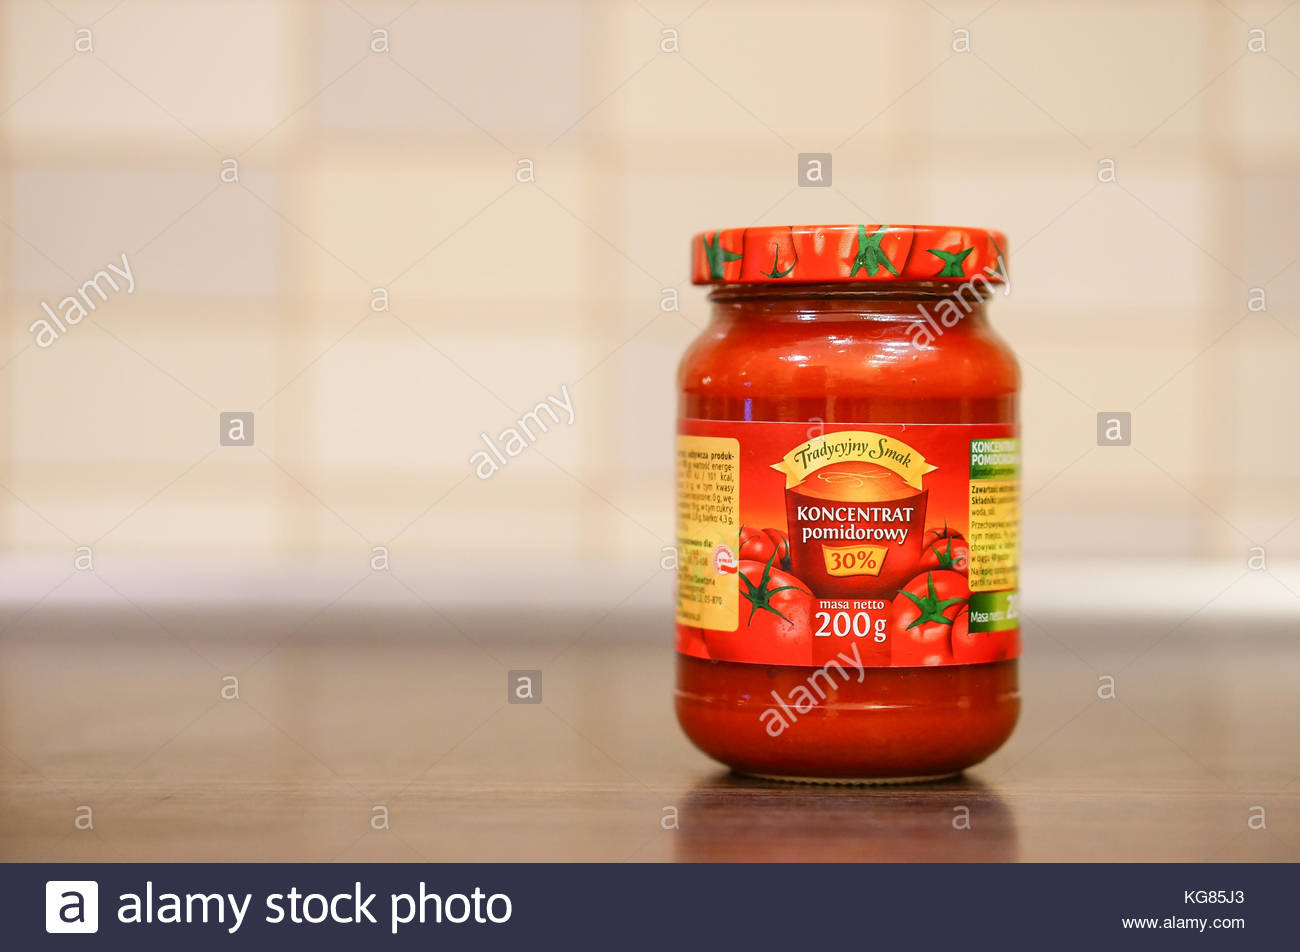 POZNAN, POLAND - OCTOBER 13, 2016: Polish Tradycyjny Smak tomato porree in a glass jar - Stock Image